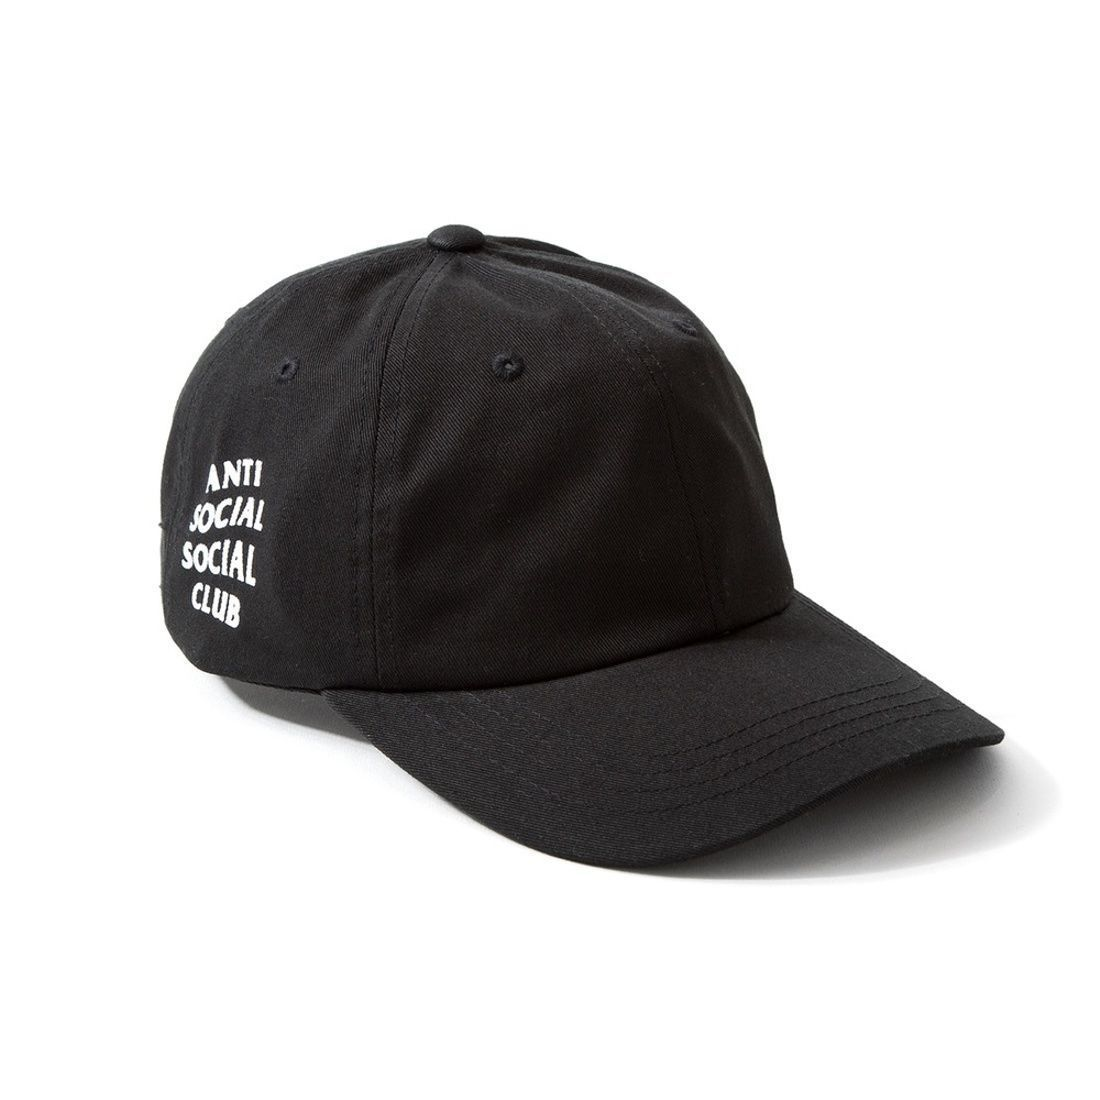 9b45312c5bb Antisocial Social Club Anti Social Club Assc Dad Hat Baseball Cap Street  Wear